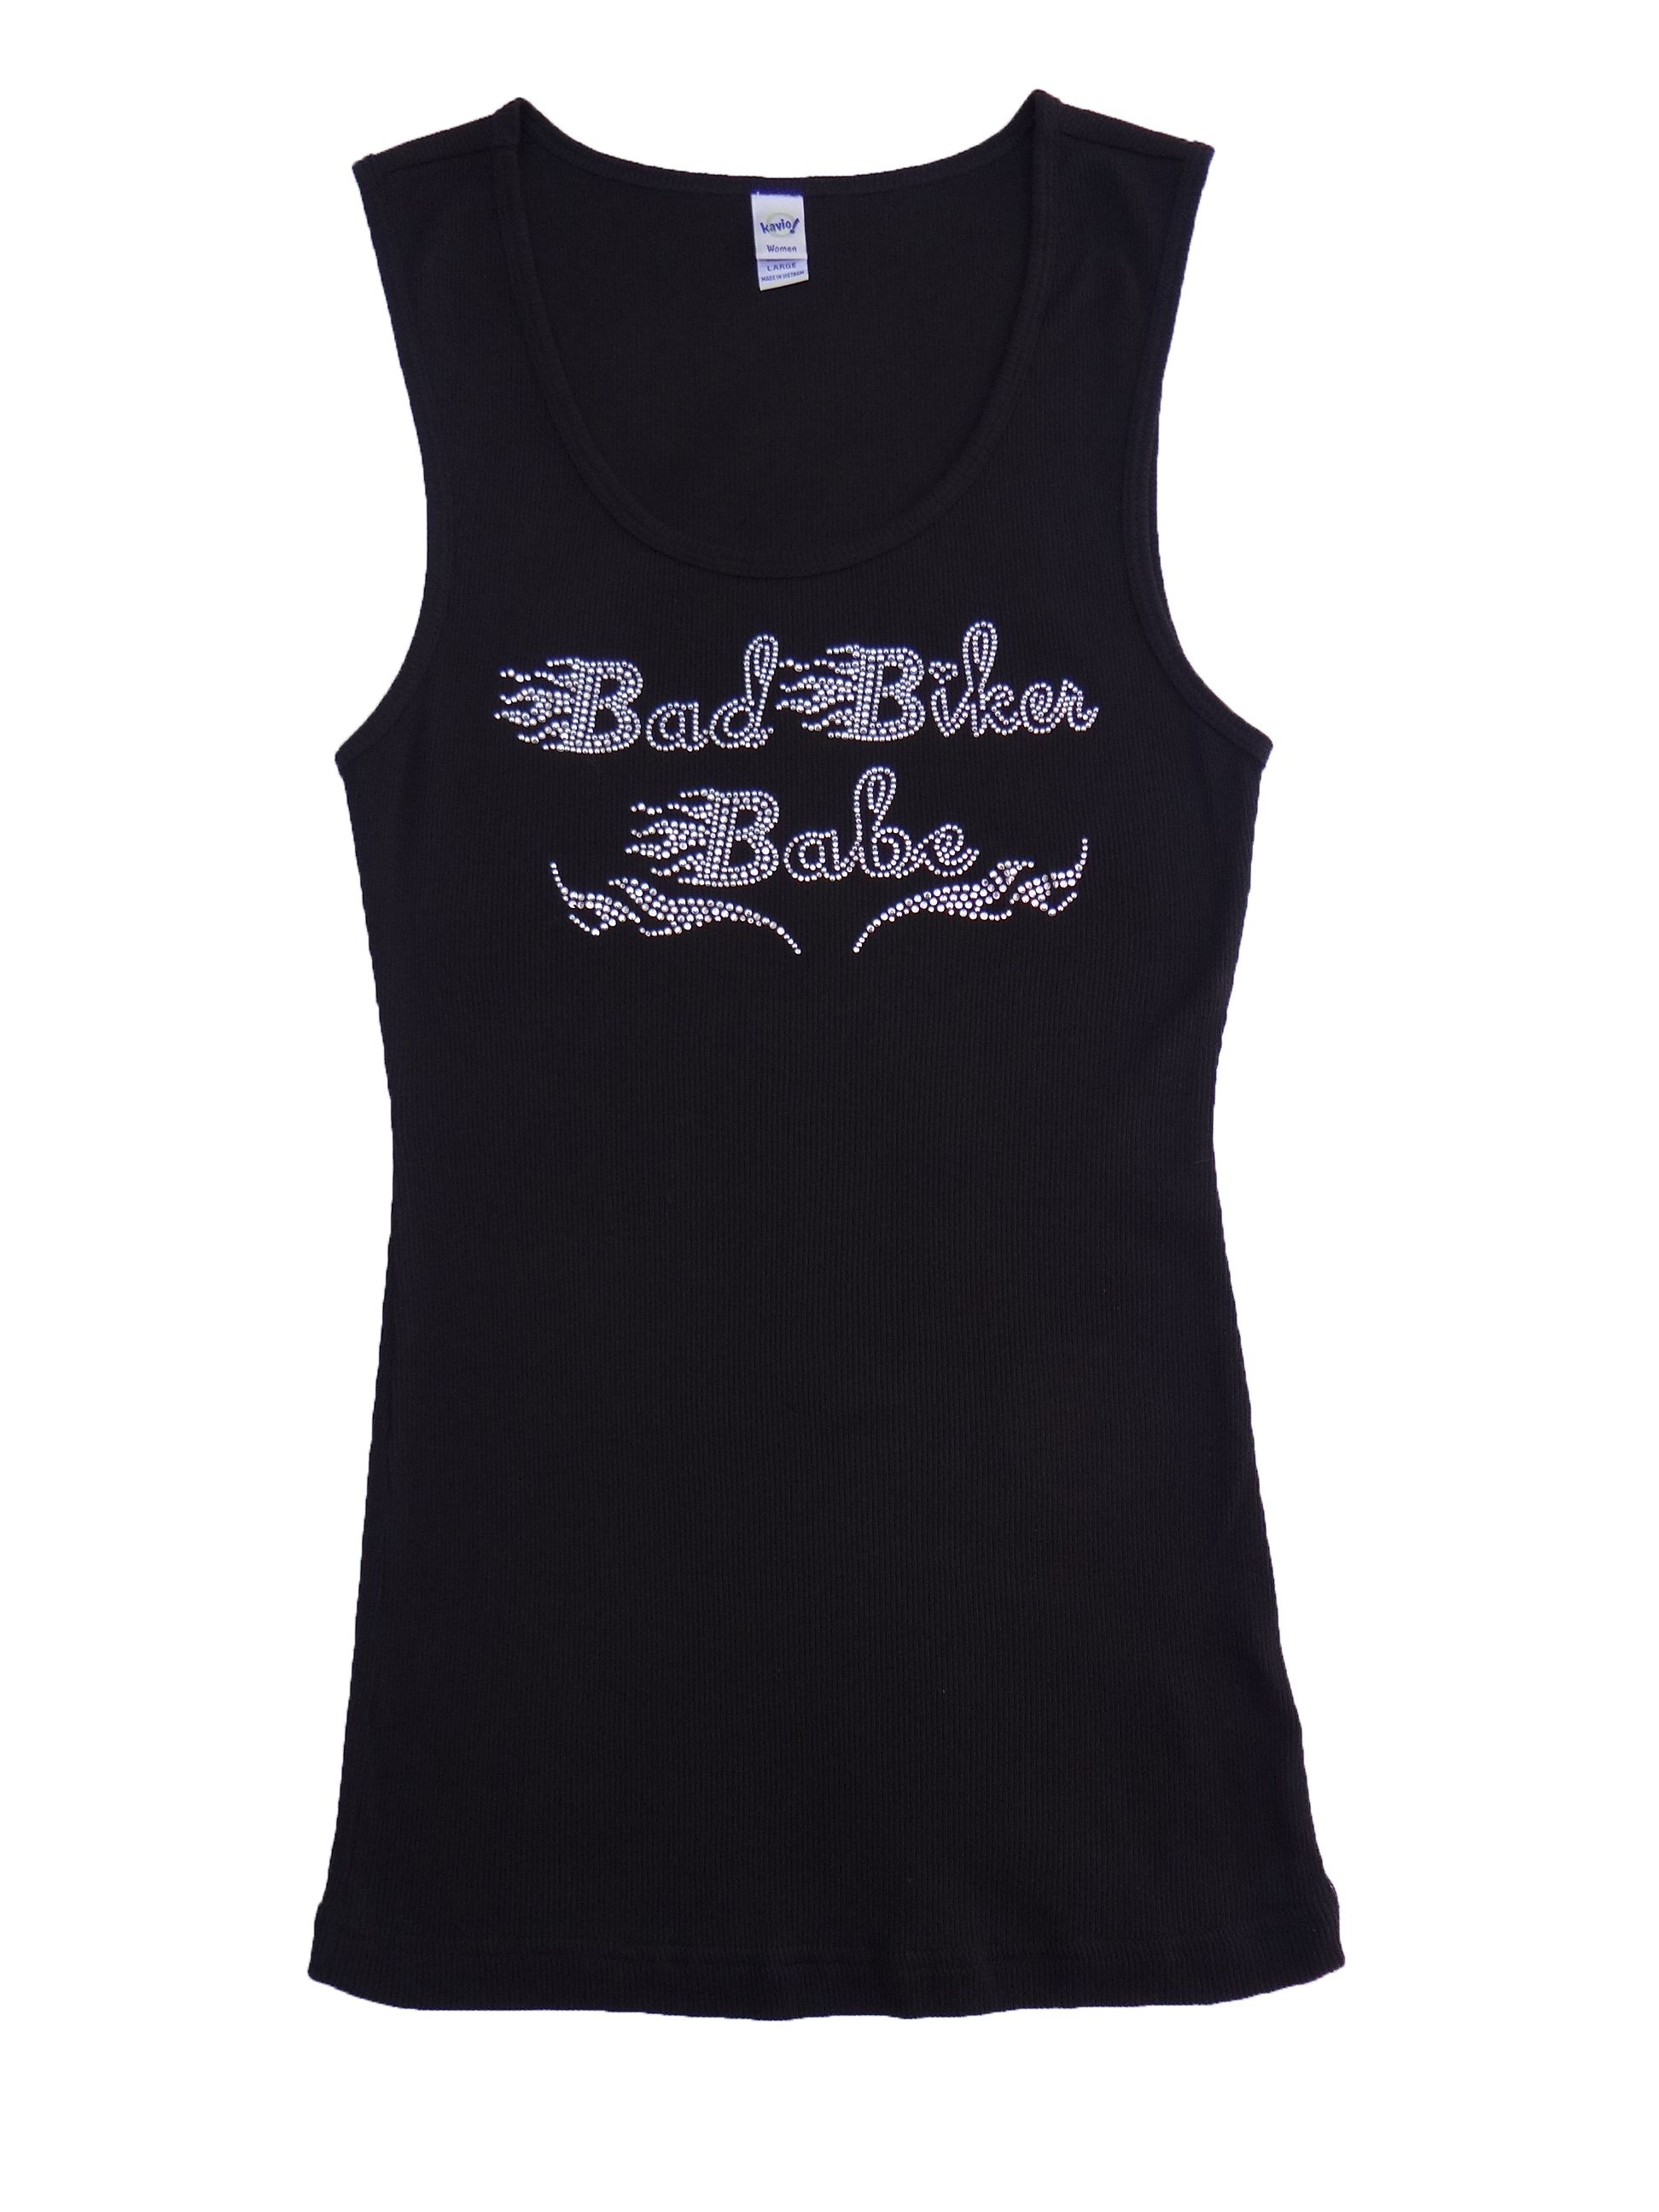 fc6229b0e7c Cute Ladies Biker Tops. I design Motorcycle Clothing that is unique   fun  to wear.